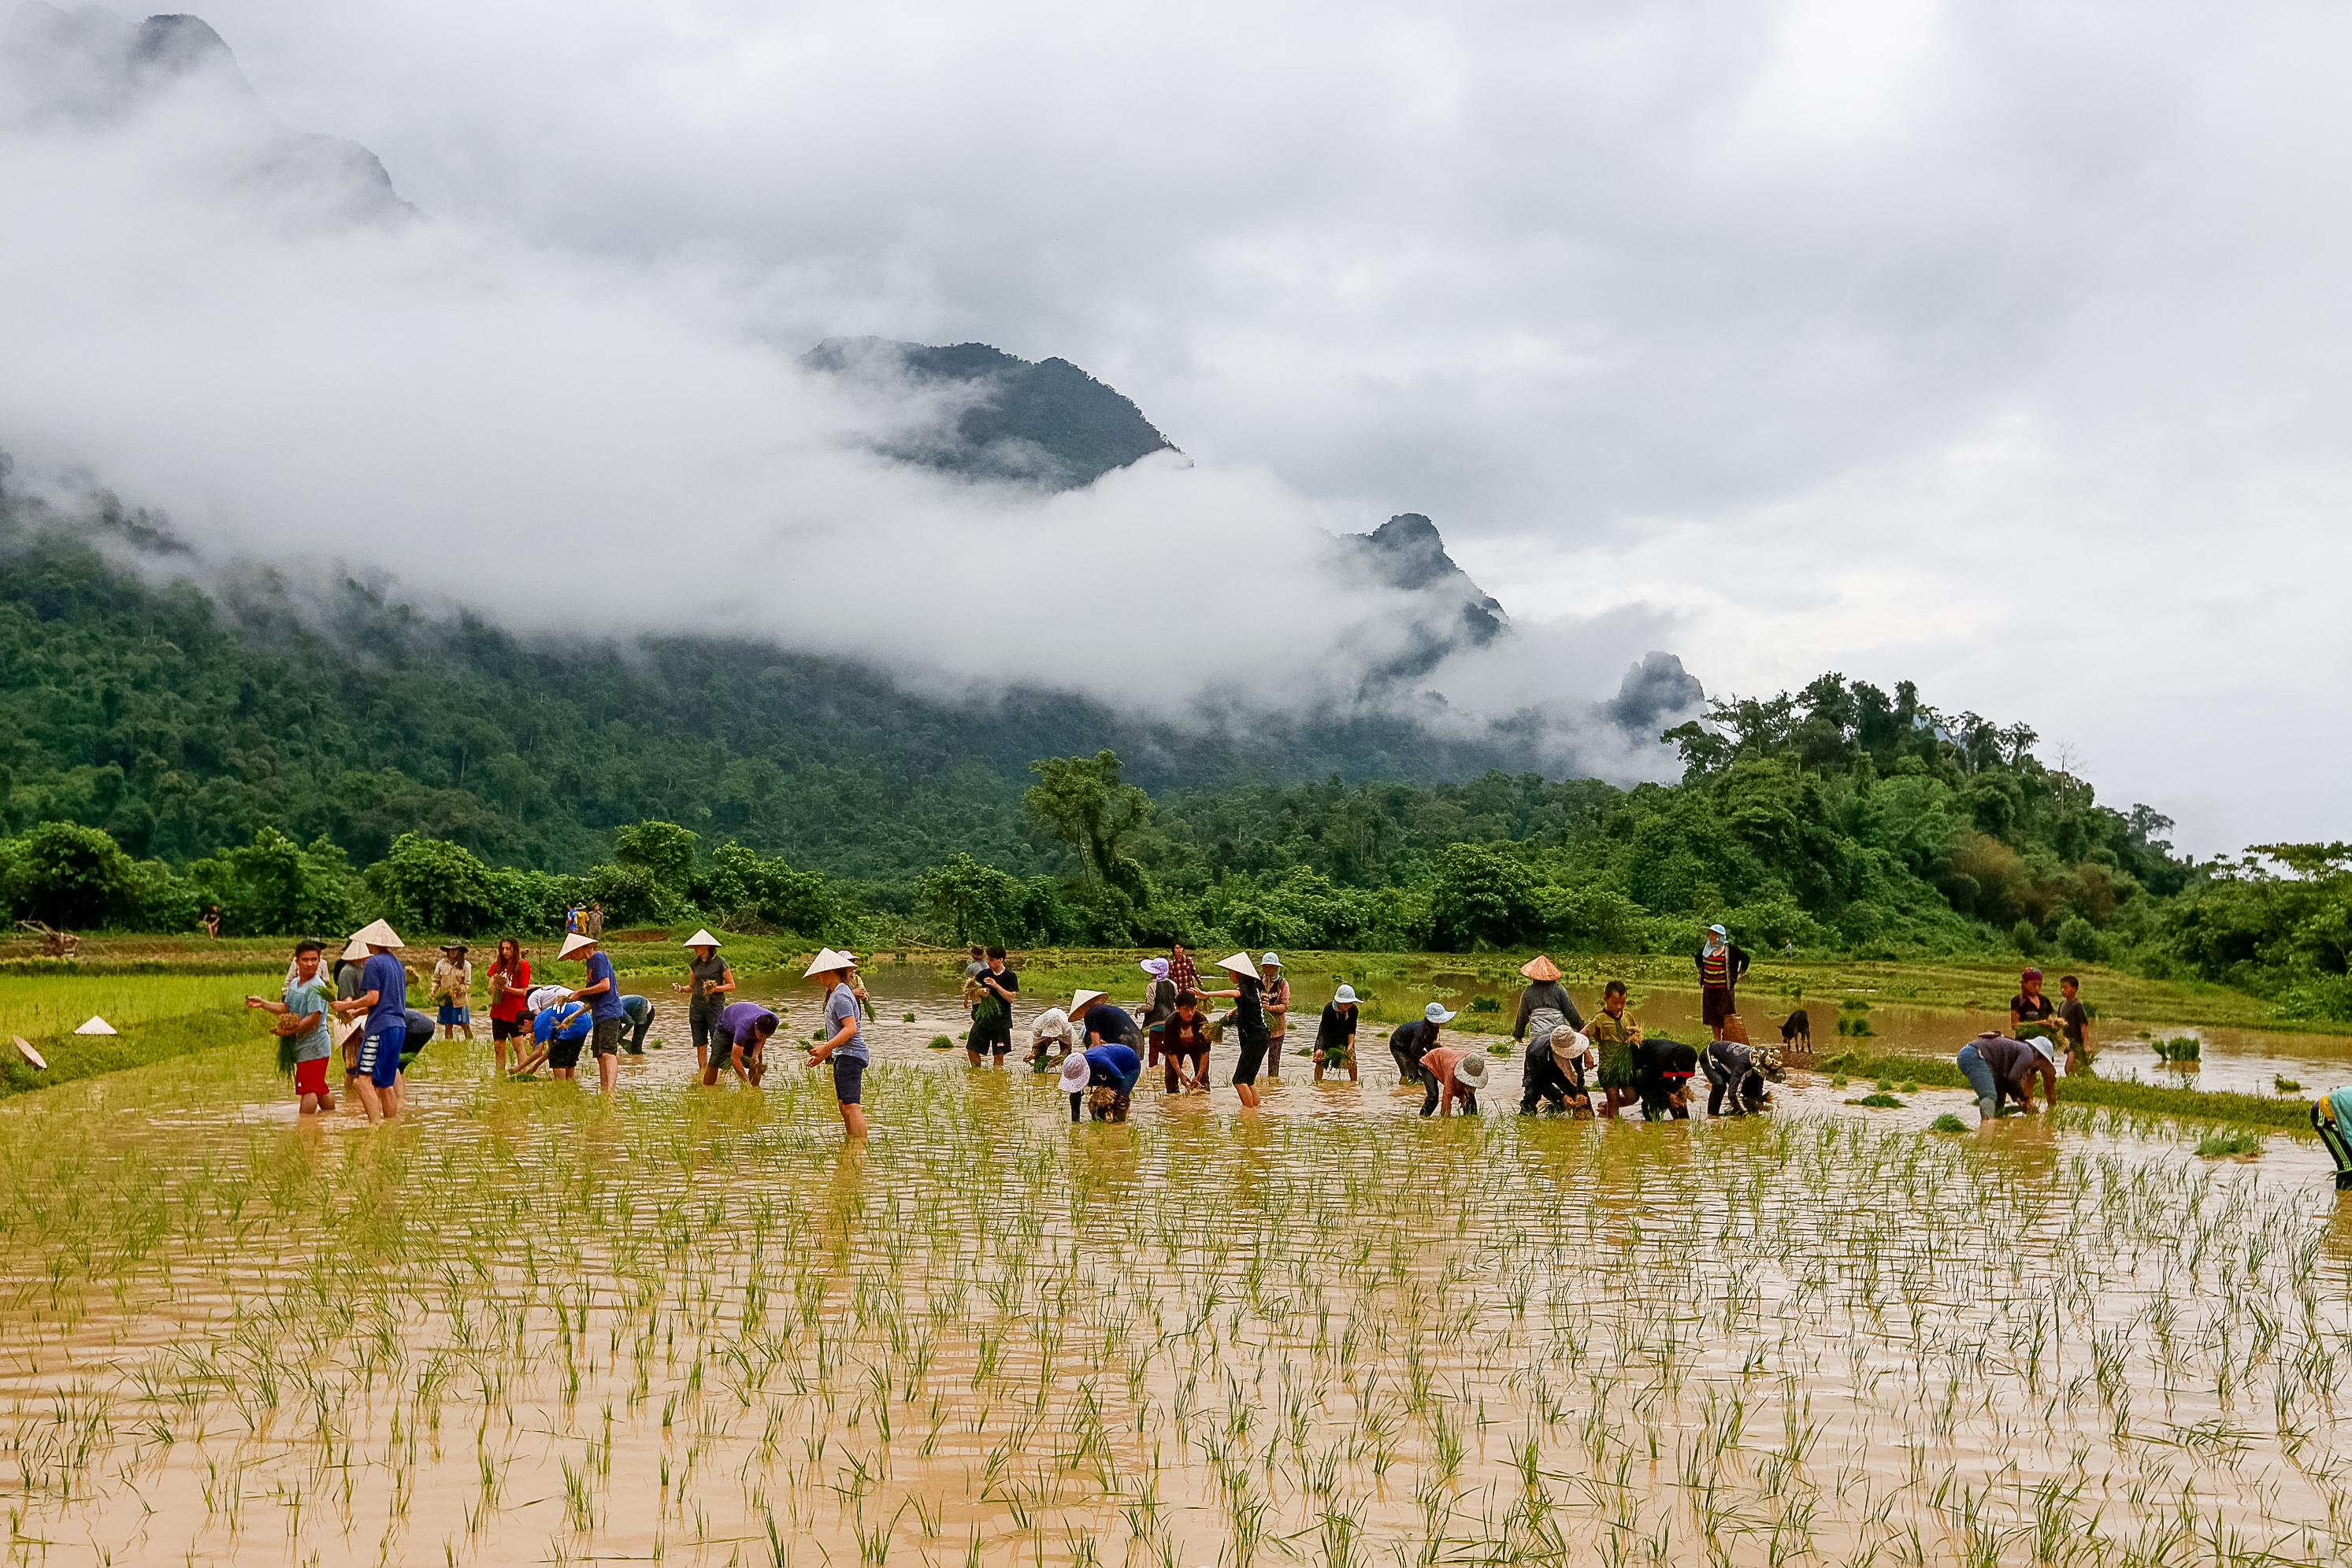 assisting farmers with rice production with Rustic Pathways in Laos